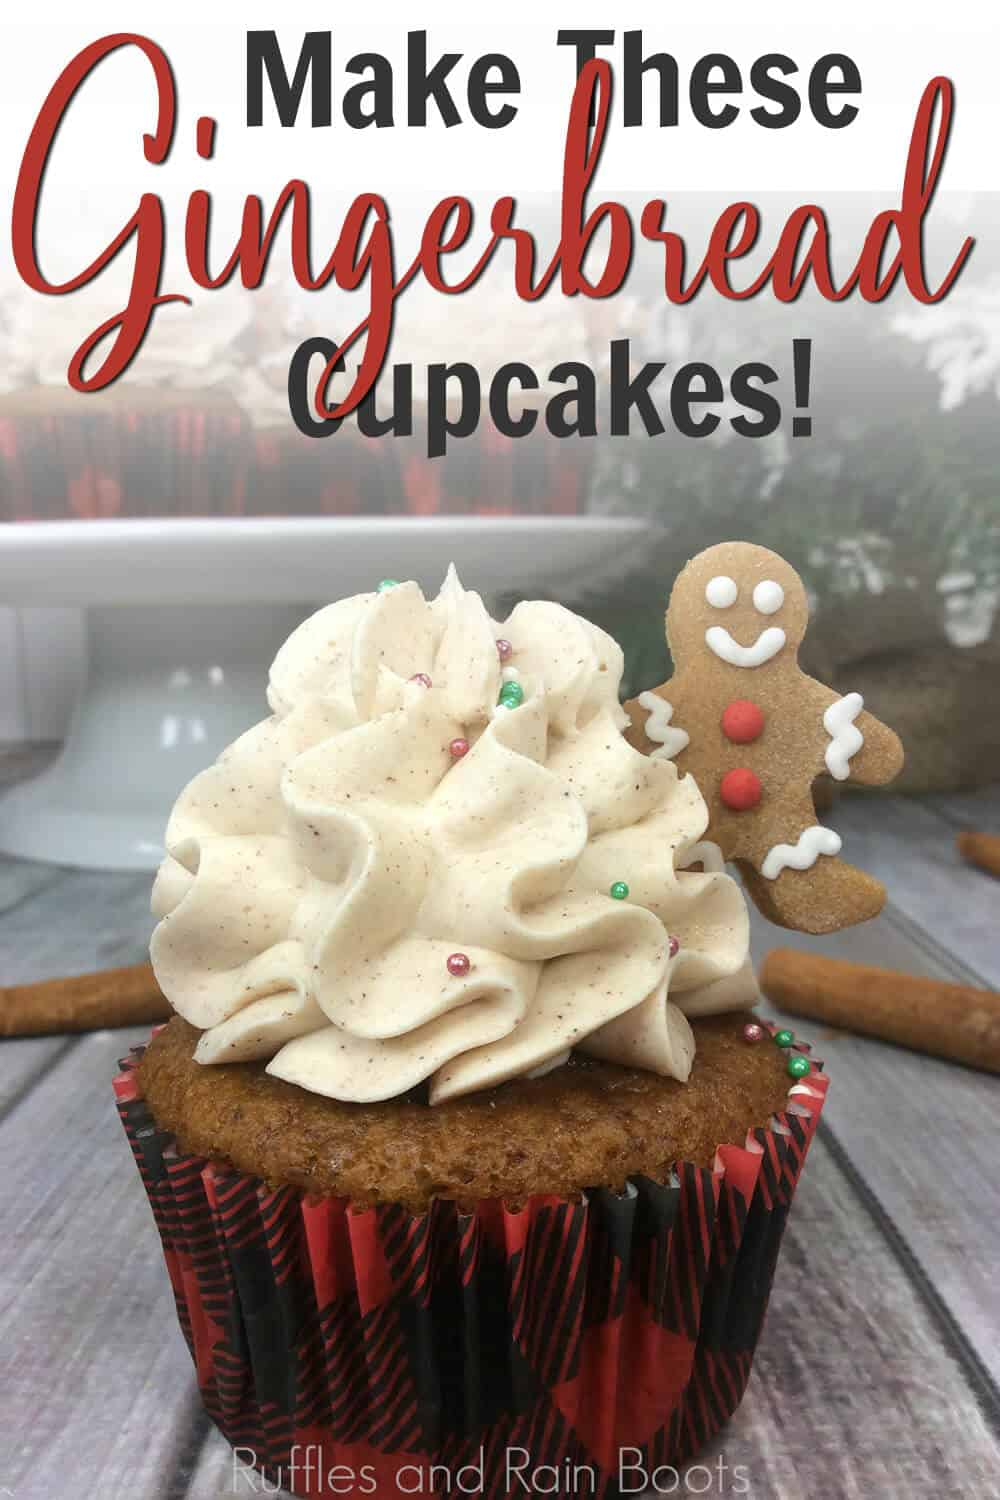 cupcakes with gingerbread cookie frosting with text which reads make these gingerbread cupcakes